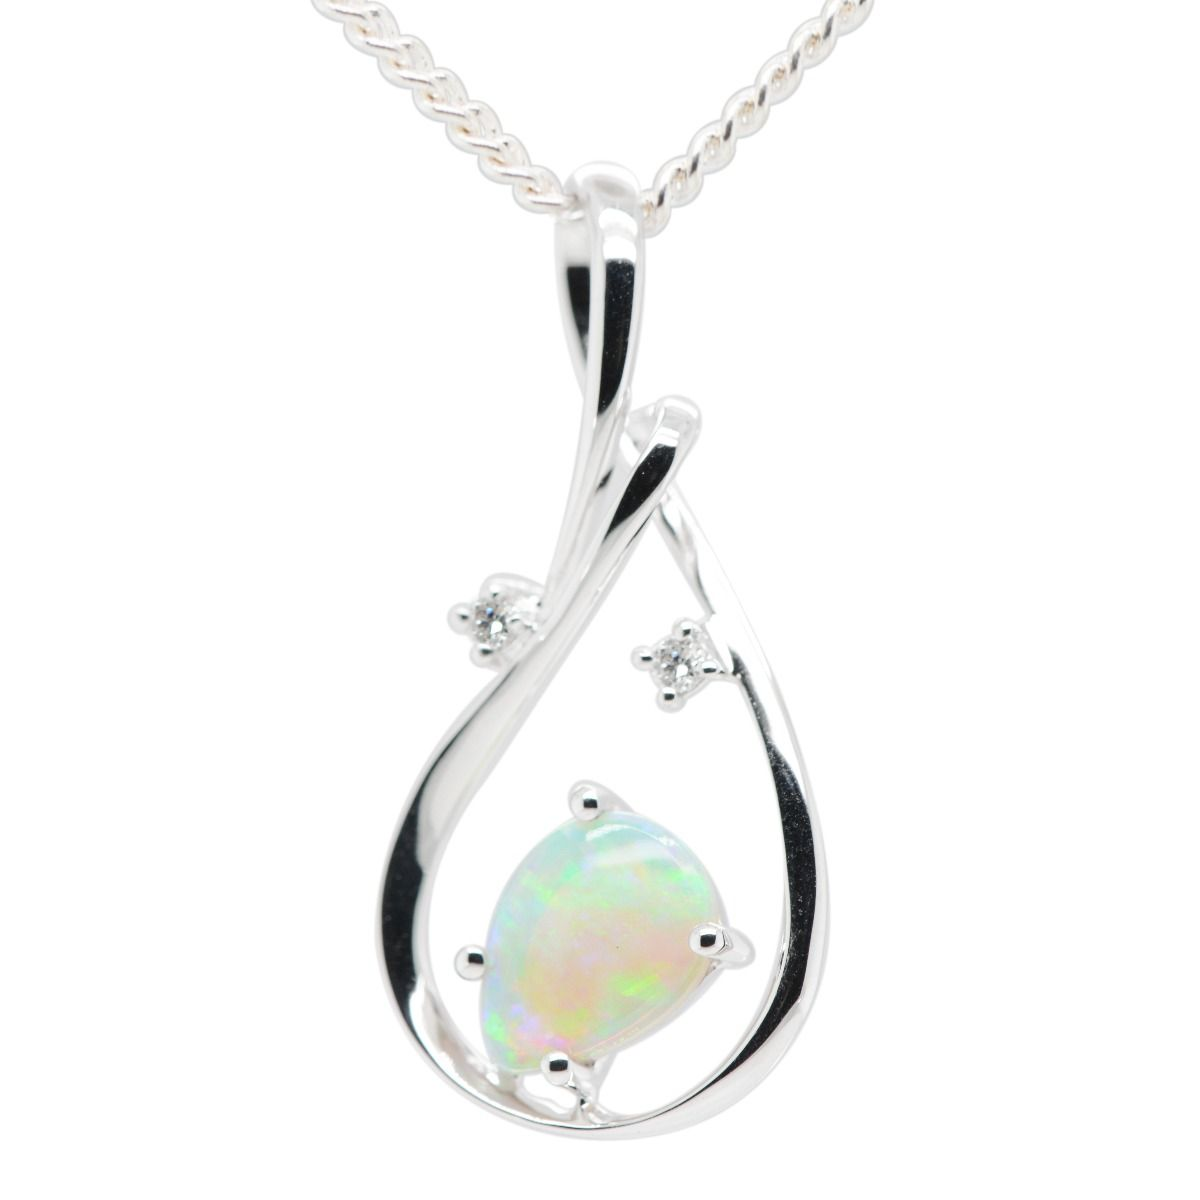 18ct White Gold Solid Crystal Opal Pendant